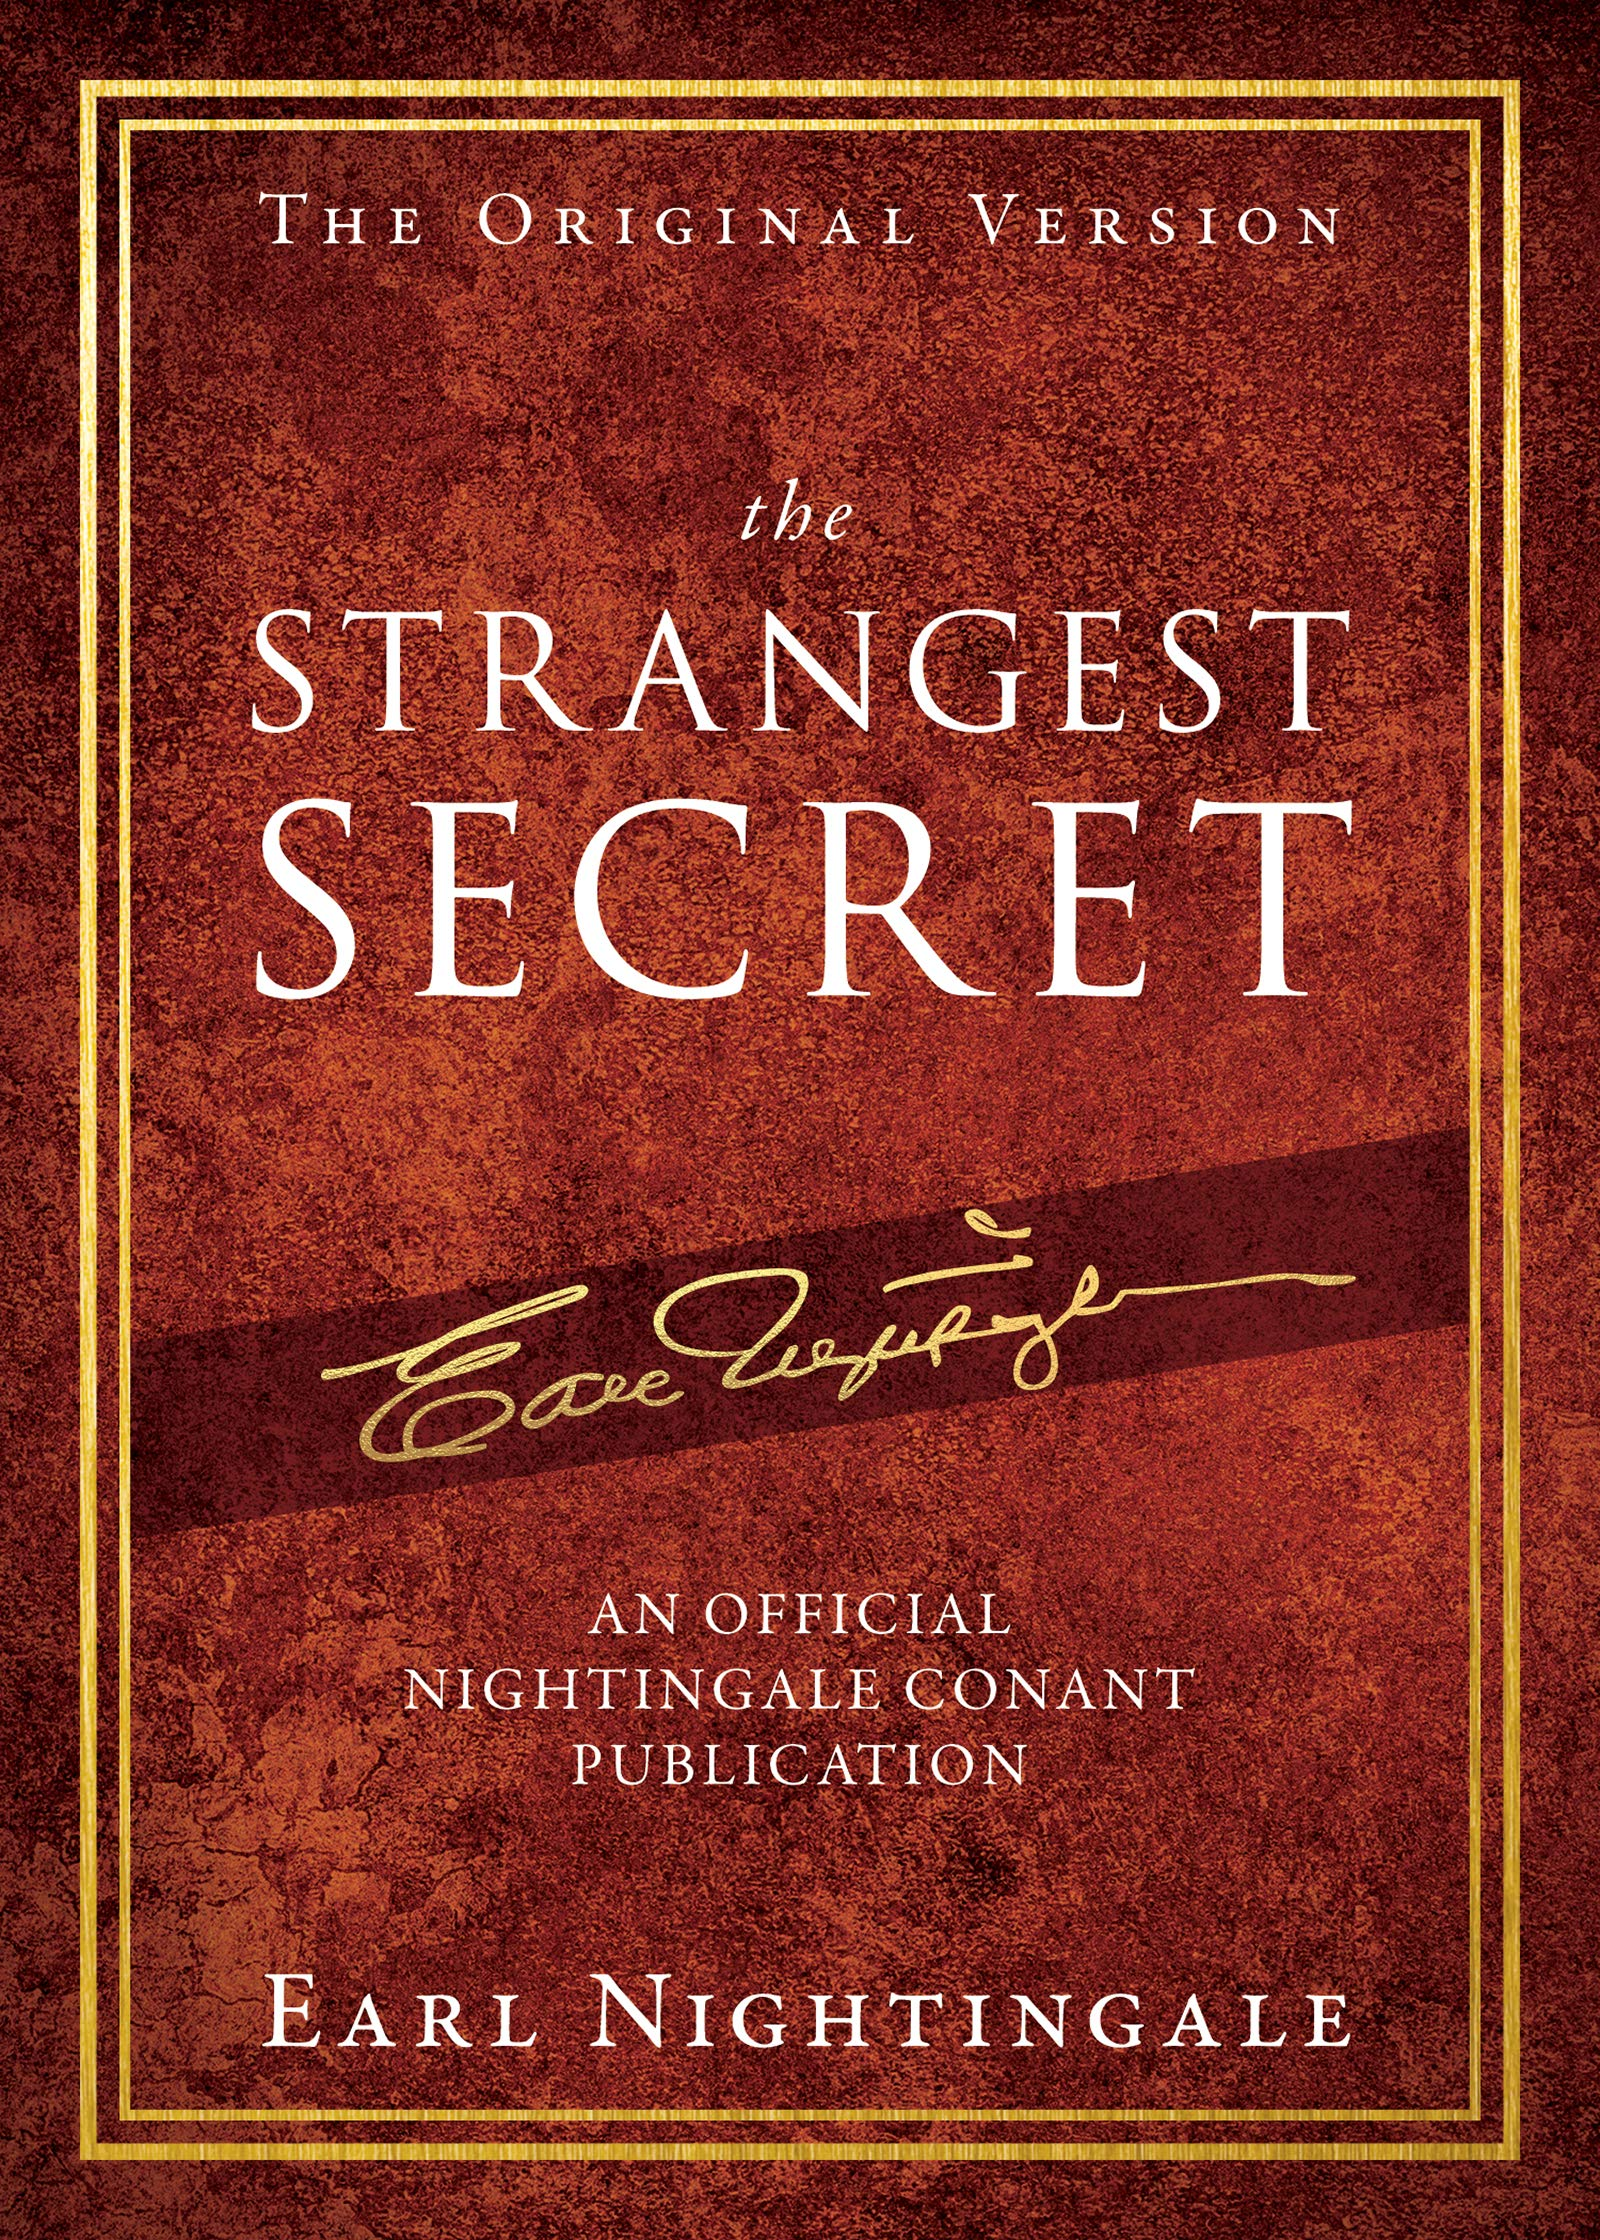 The Strangest Secret (An Official Nightingale Conant Publication)